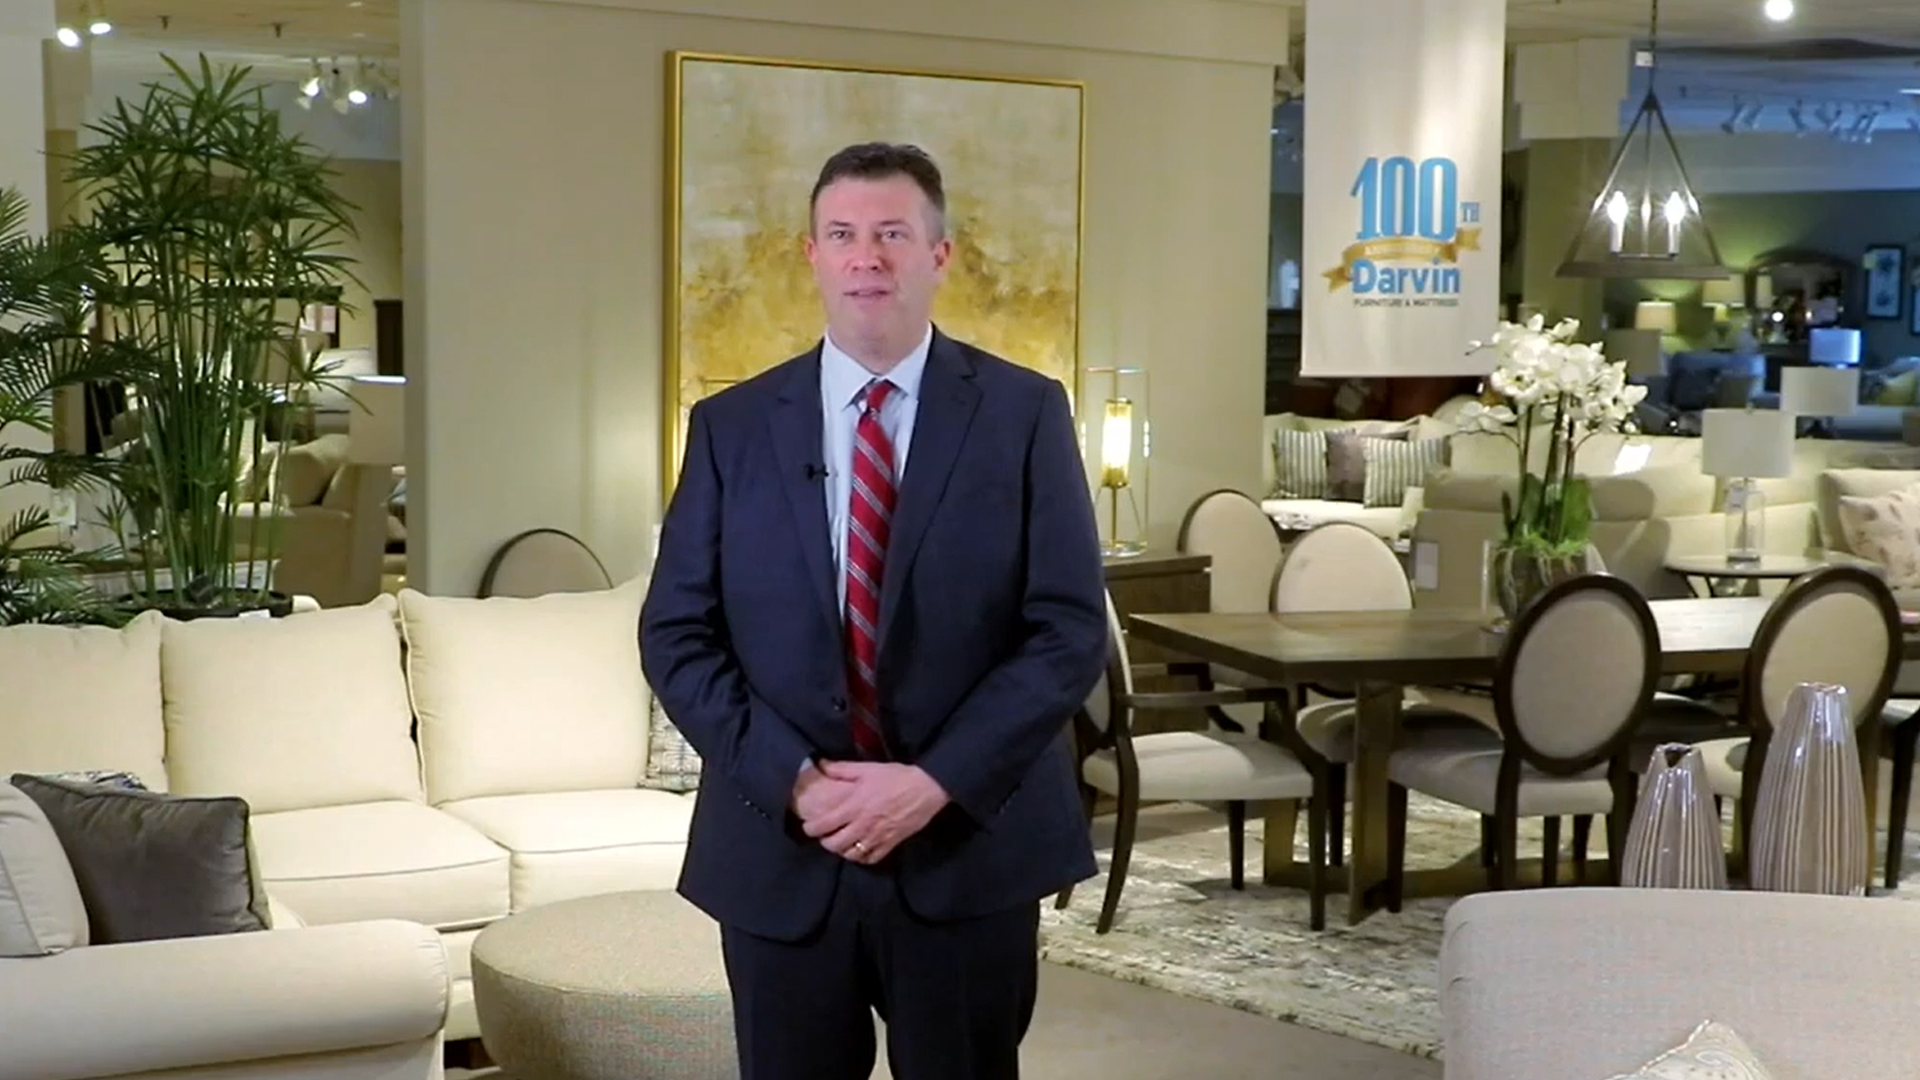 At 100 Darvin Sees A Bright Future Home Furnishings Association